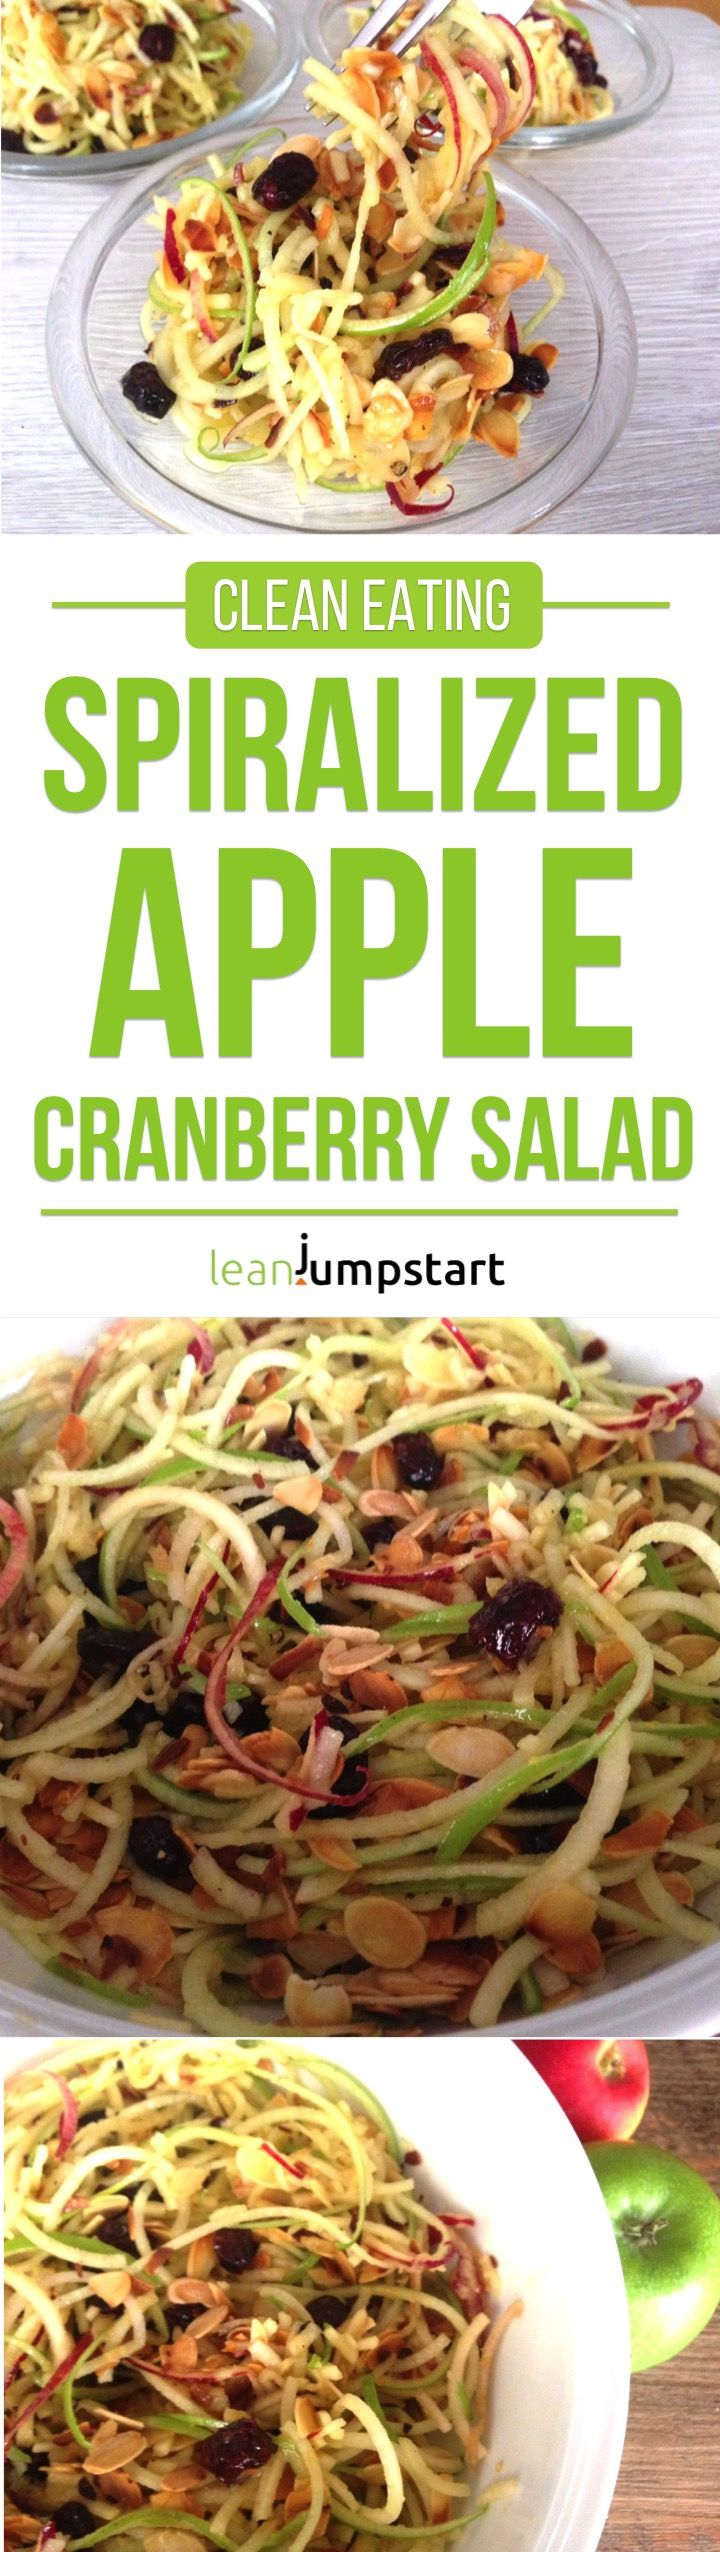 spiralized apple cranberry salad recipe - ready in 10 minutes  #thanksgiving #apples #leanjumpstart via @leanjumpstart